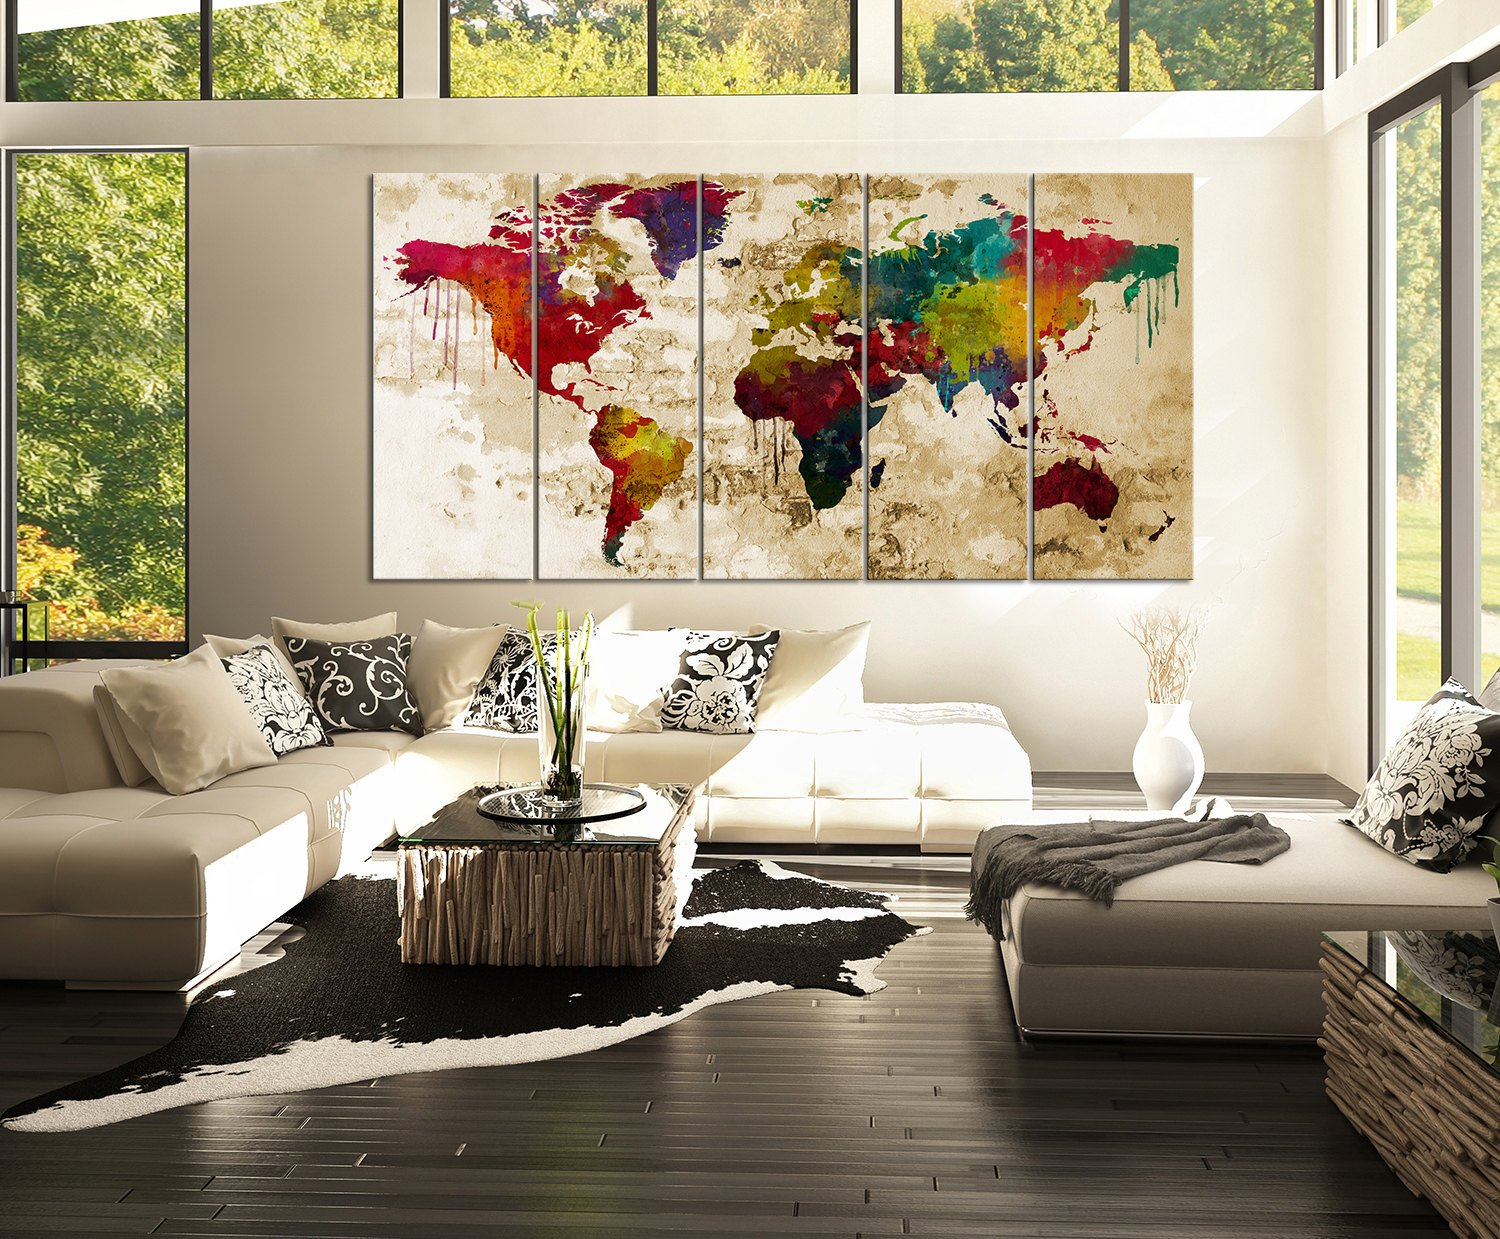 Amazon watercolor world map canvas print 5 panel colorful amazon watercolor world map canvas print 5 panel colorful abstract rainbow colors large wall art posters prints gumiabroncs Images